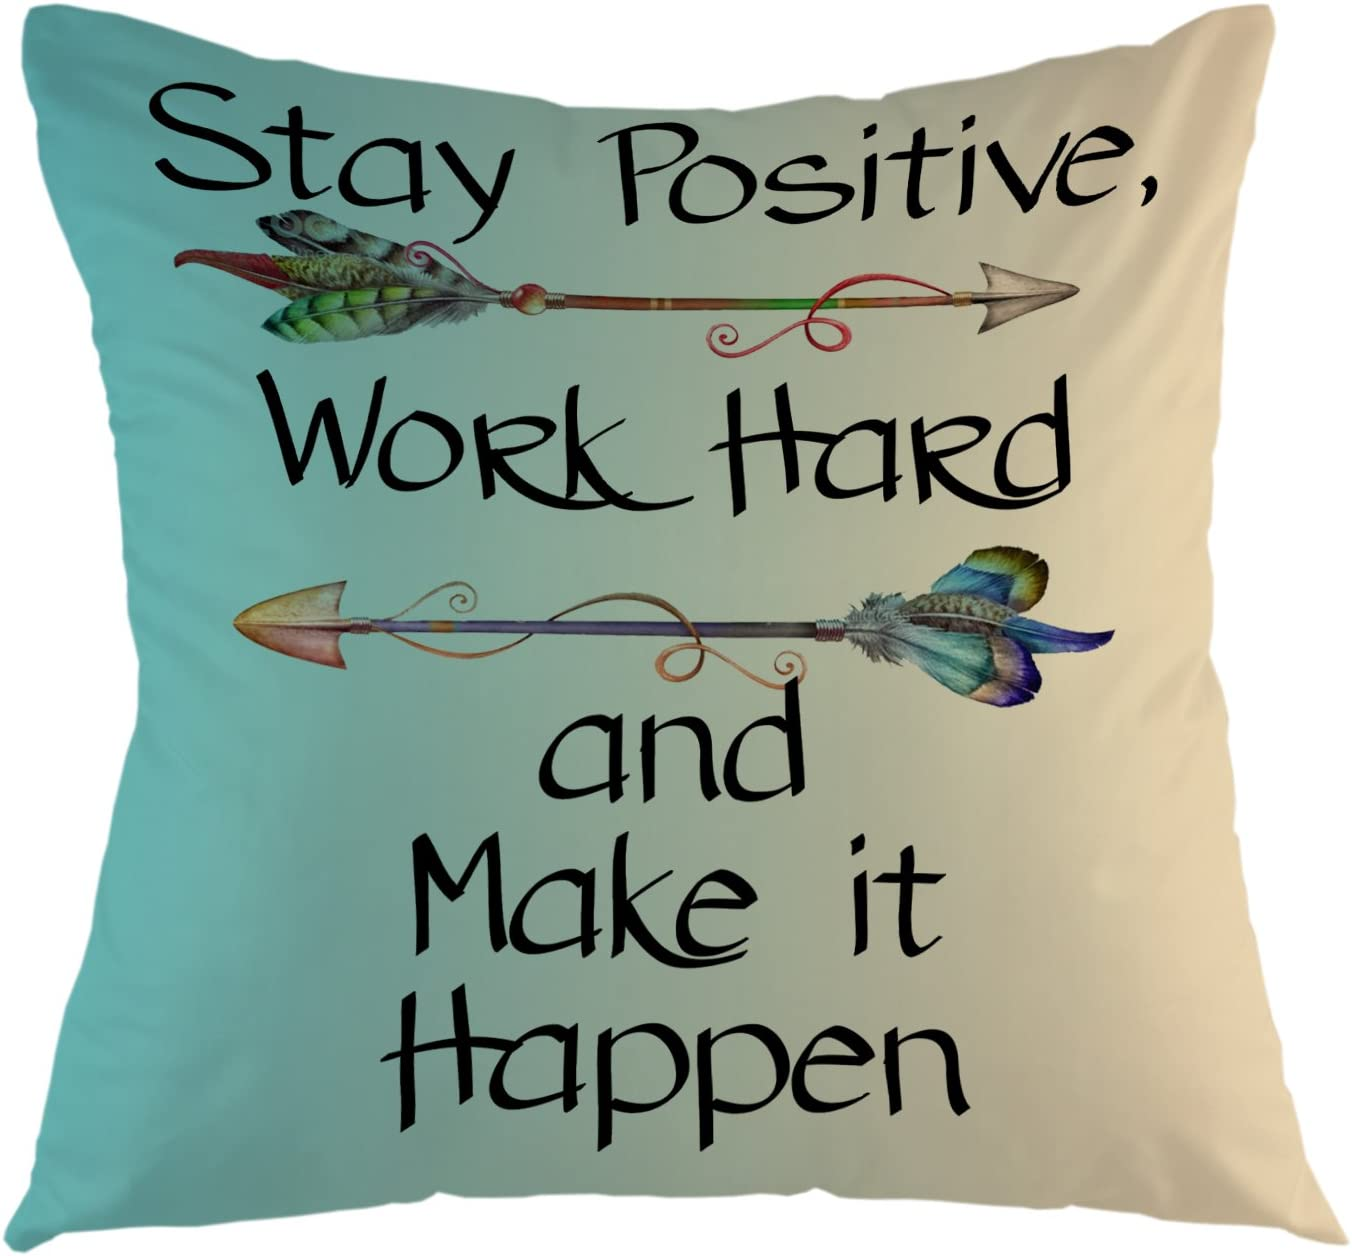 Amazon Com Ofloral Stay Positive Work Hard And Make It Happen Quote Pillow Case Arrow Throw Pillow Cover Square Cushion Cover For Sofa Couch Home Car Bedroom Living Room Decorative 18 X 18